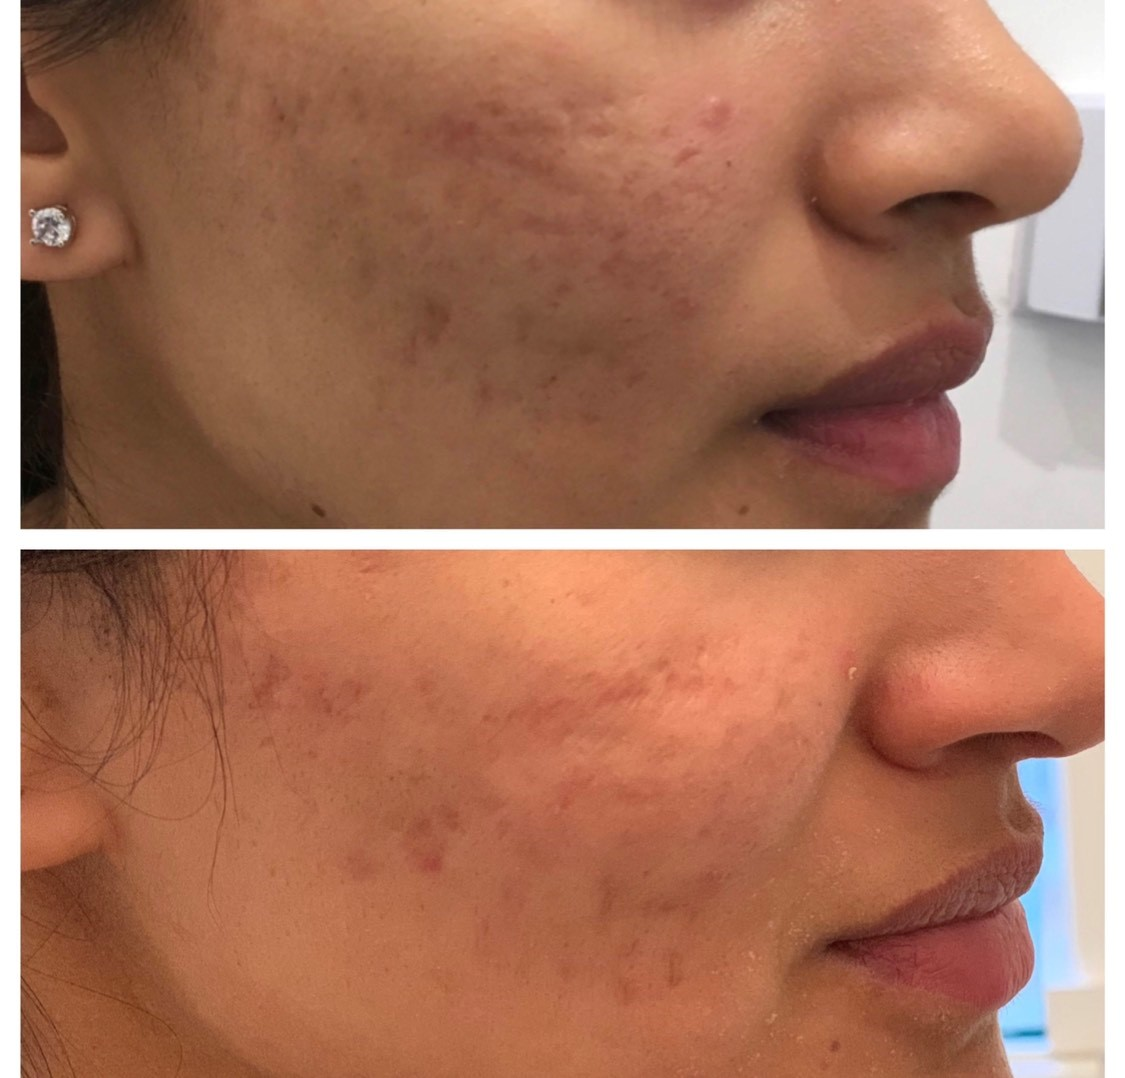 Before and after results of Microneedling on acne scars, at Regent's Park Aesthetics